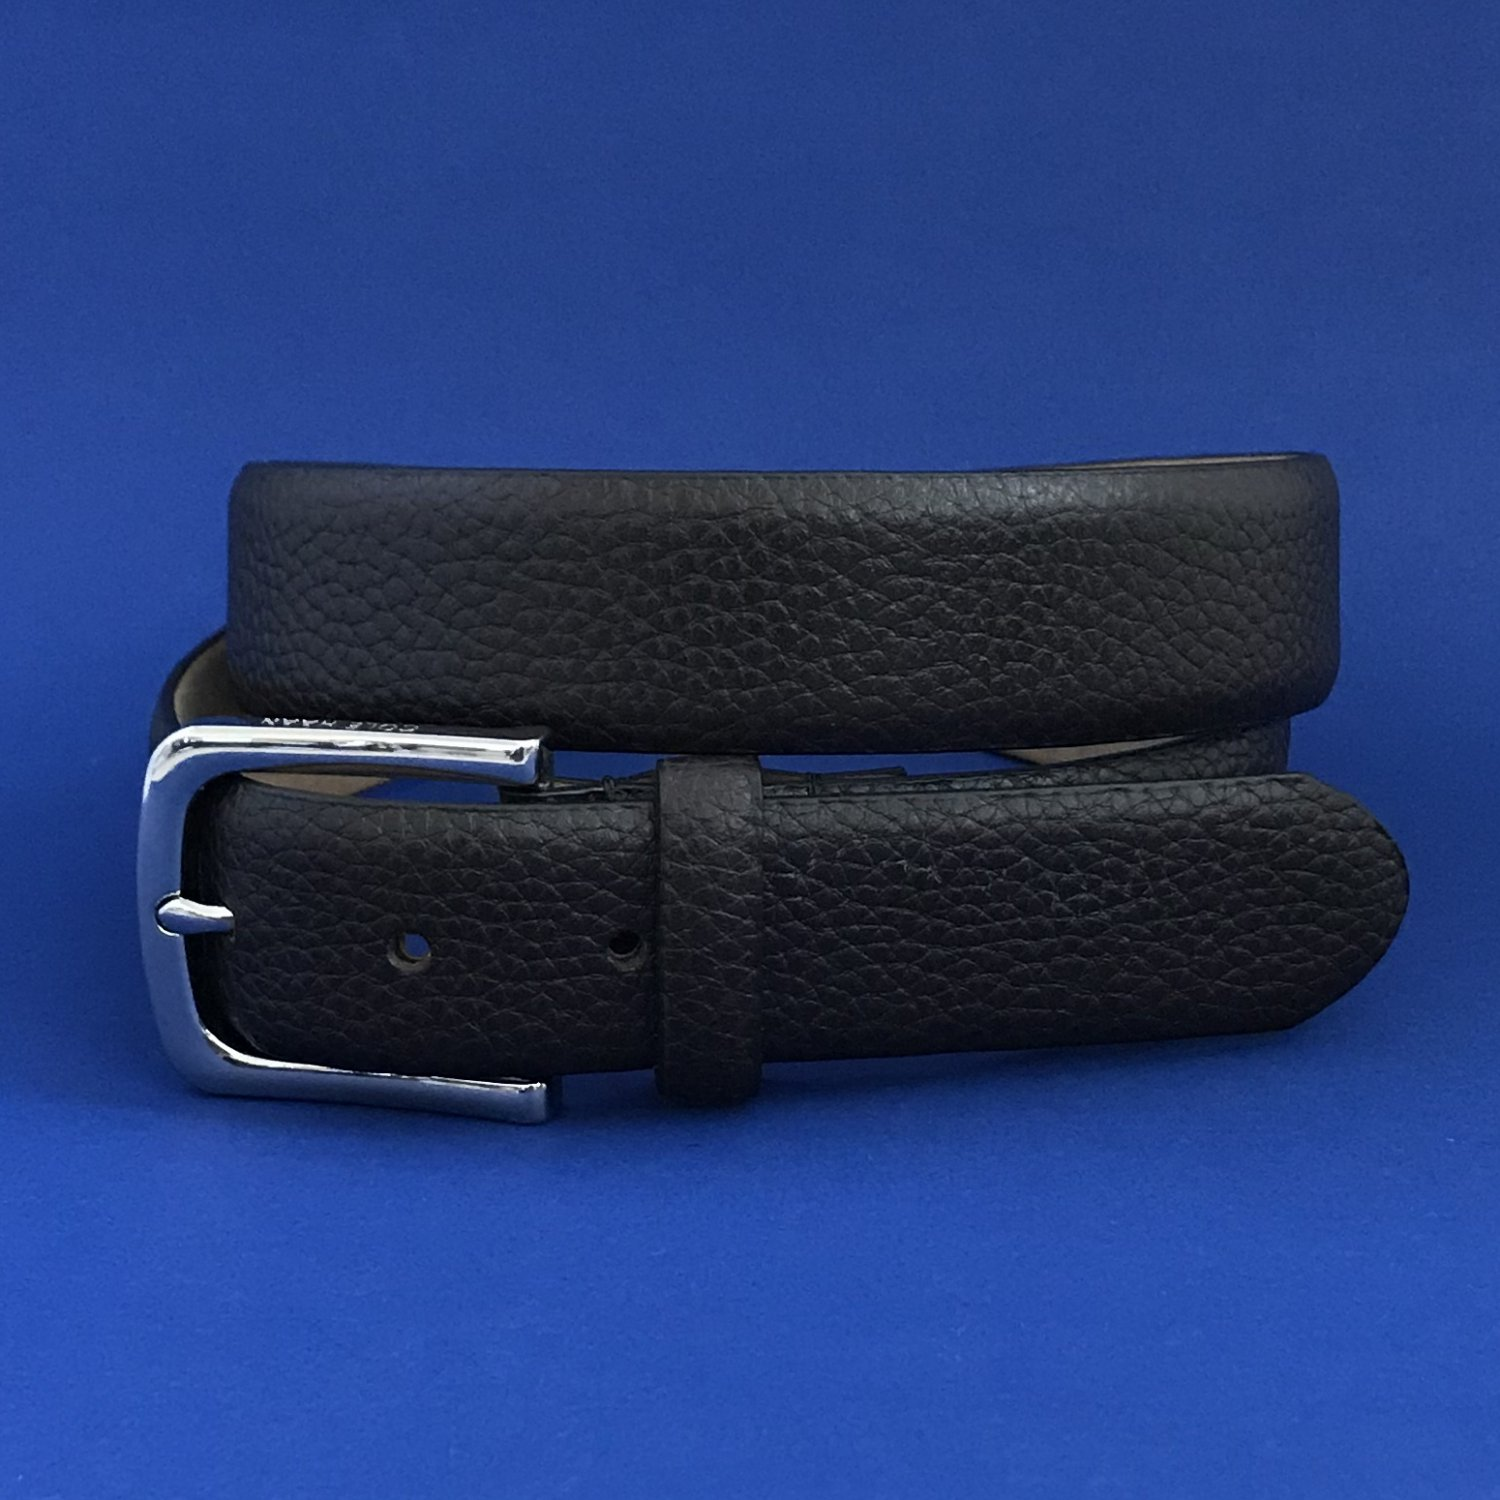 NWT Cole Haan 35MM Chocolate Brown Pebbled Leather Belt #CHDM31041 - 36